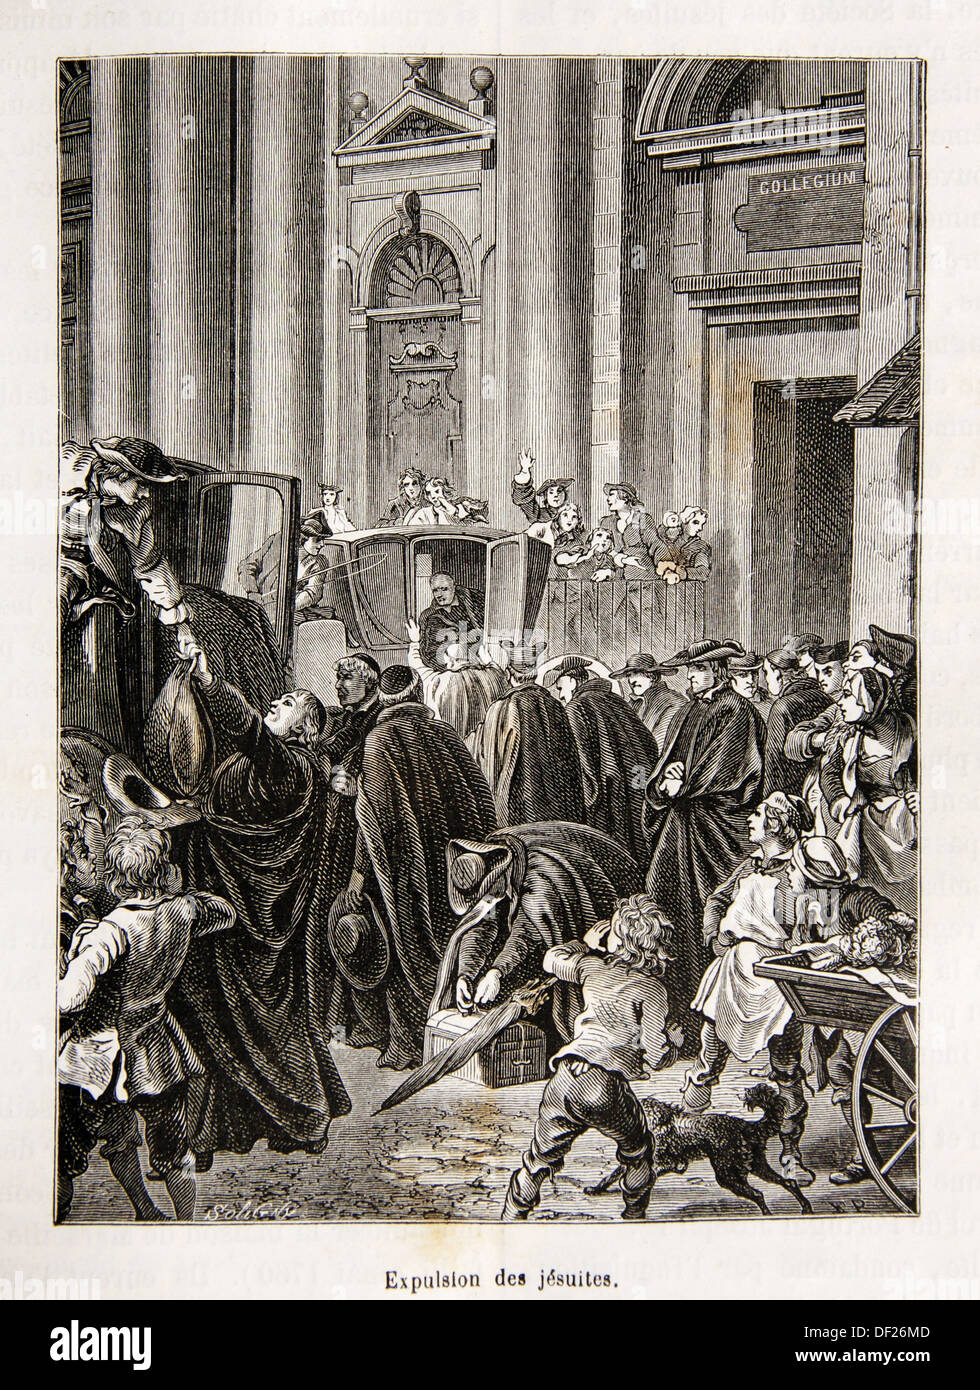 Expulsion of the Jesuit order in 1767, France - Stock Image